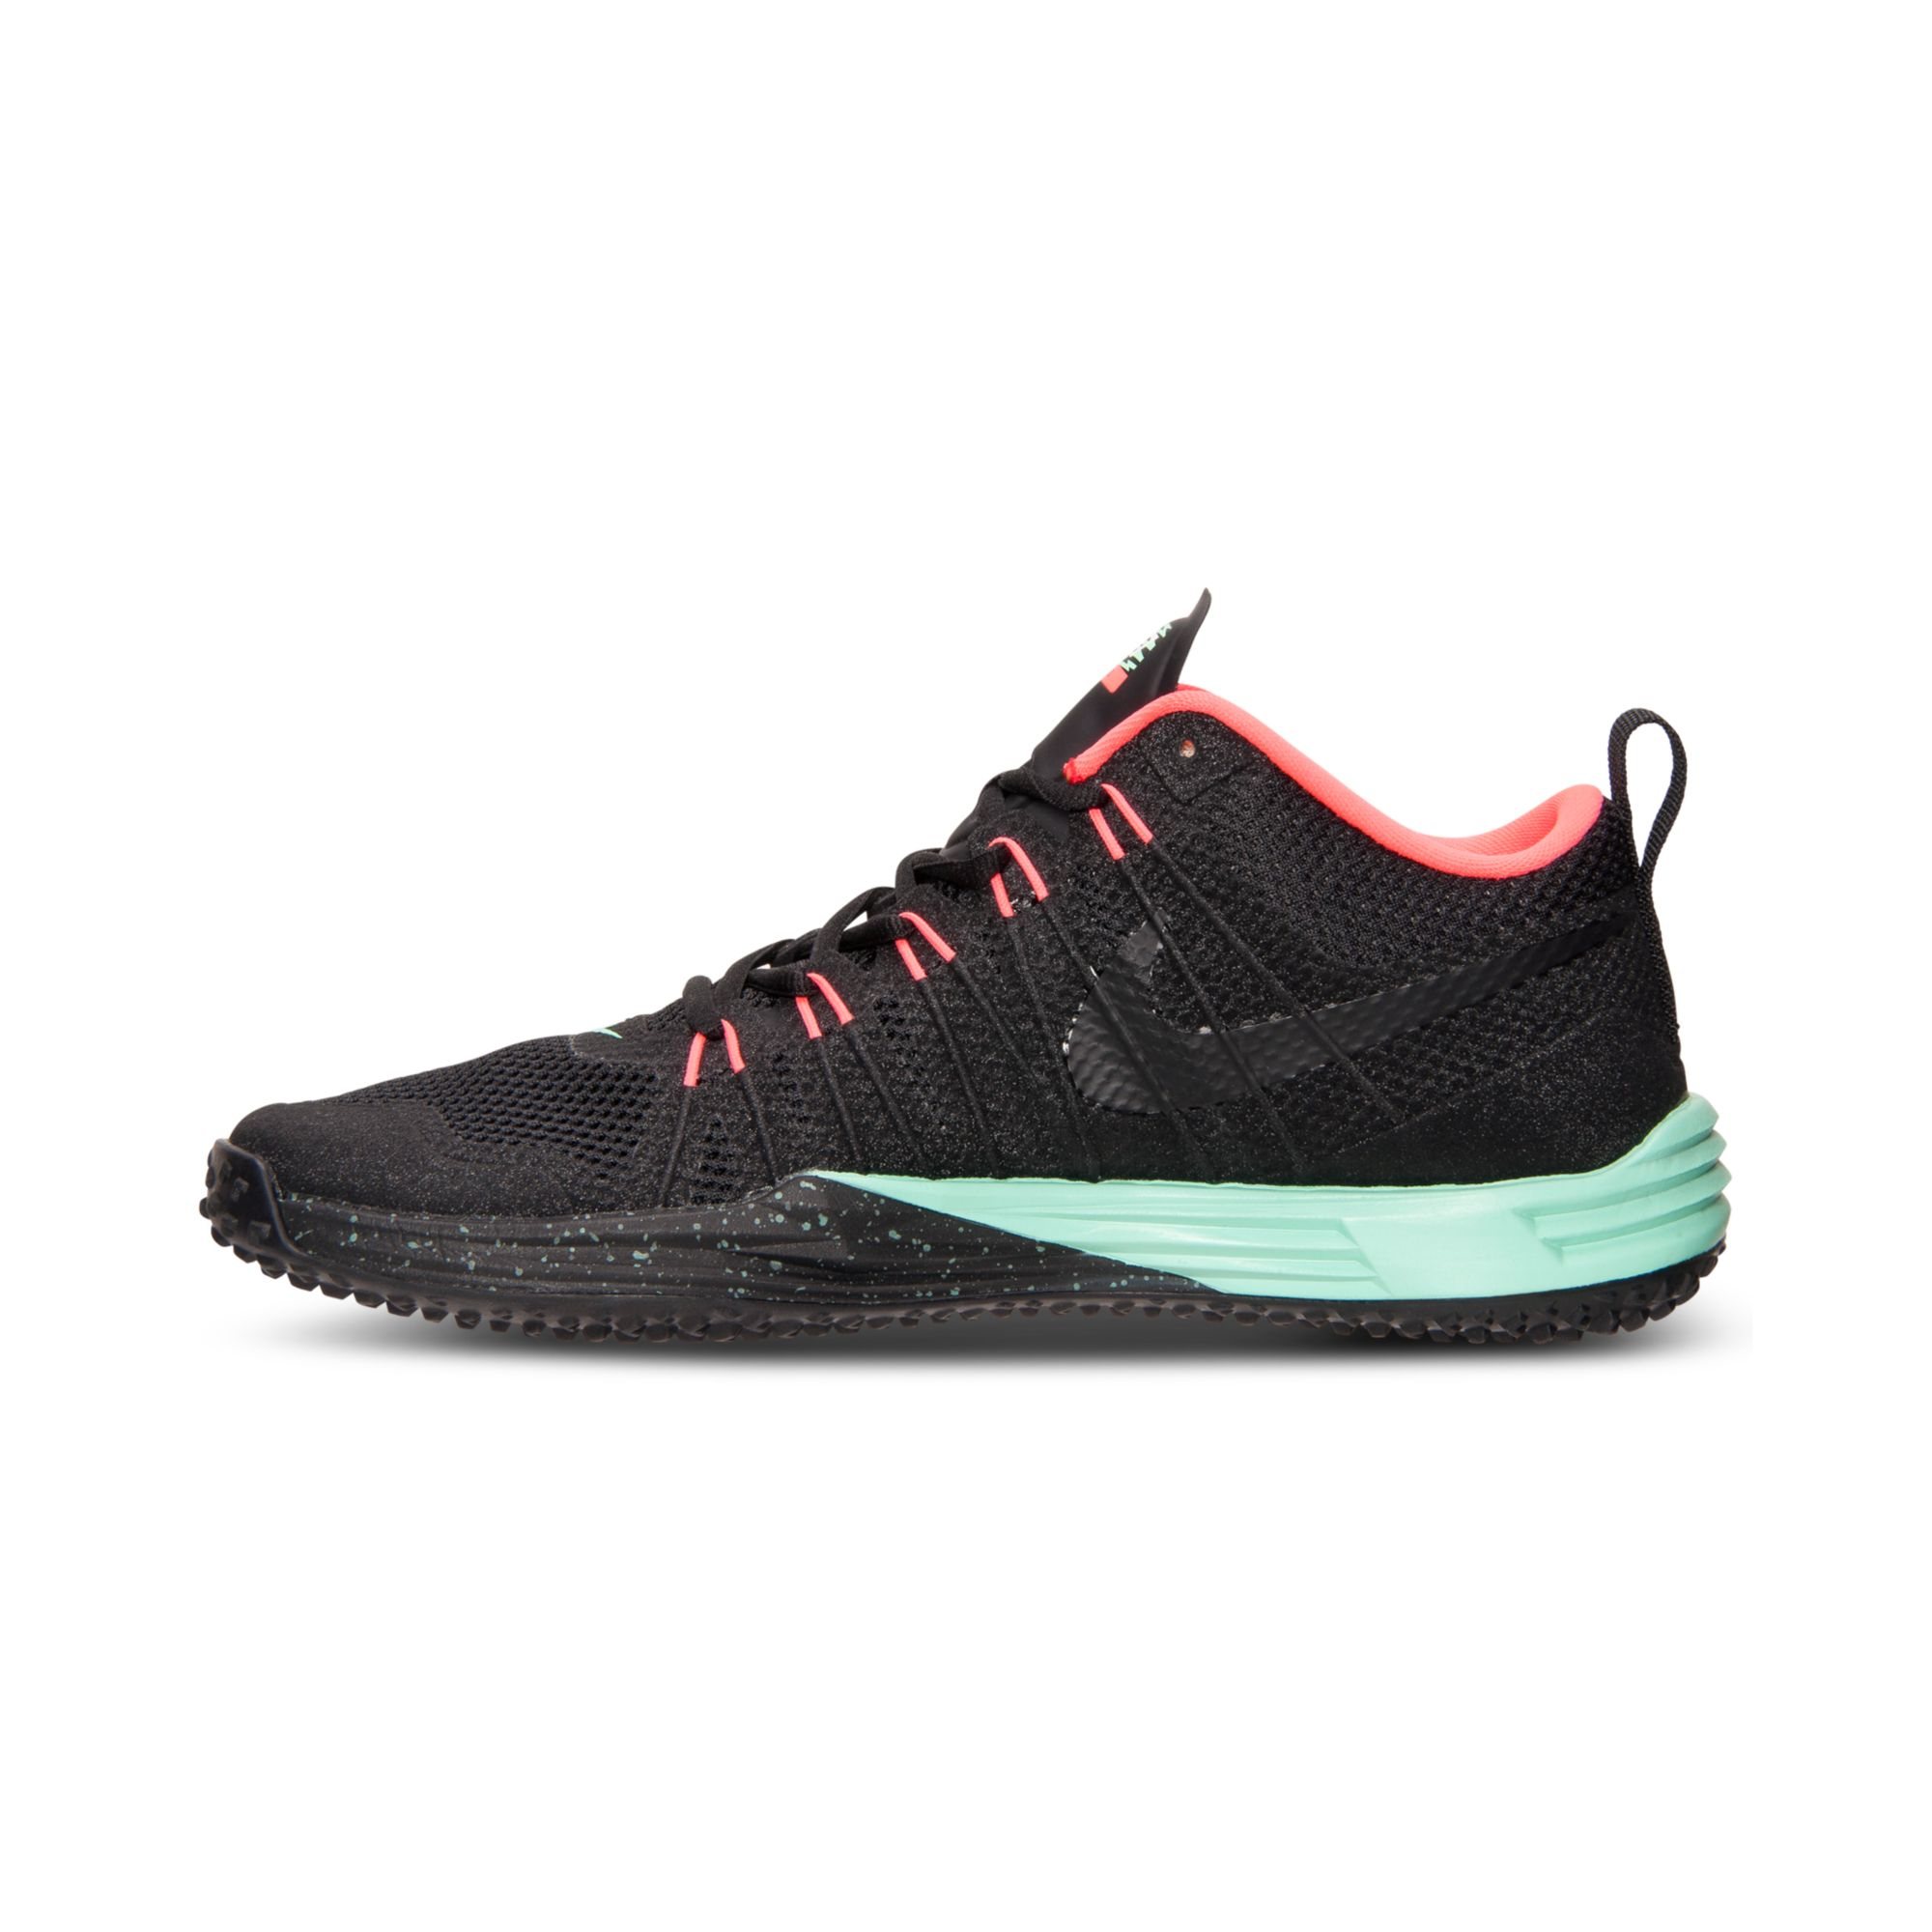 Nike Lunar Tr Nrg Training Shoes